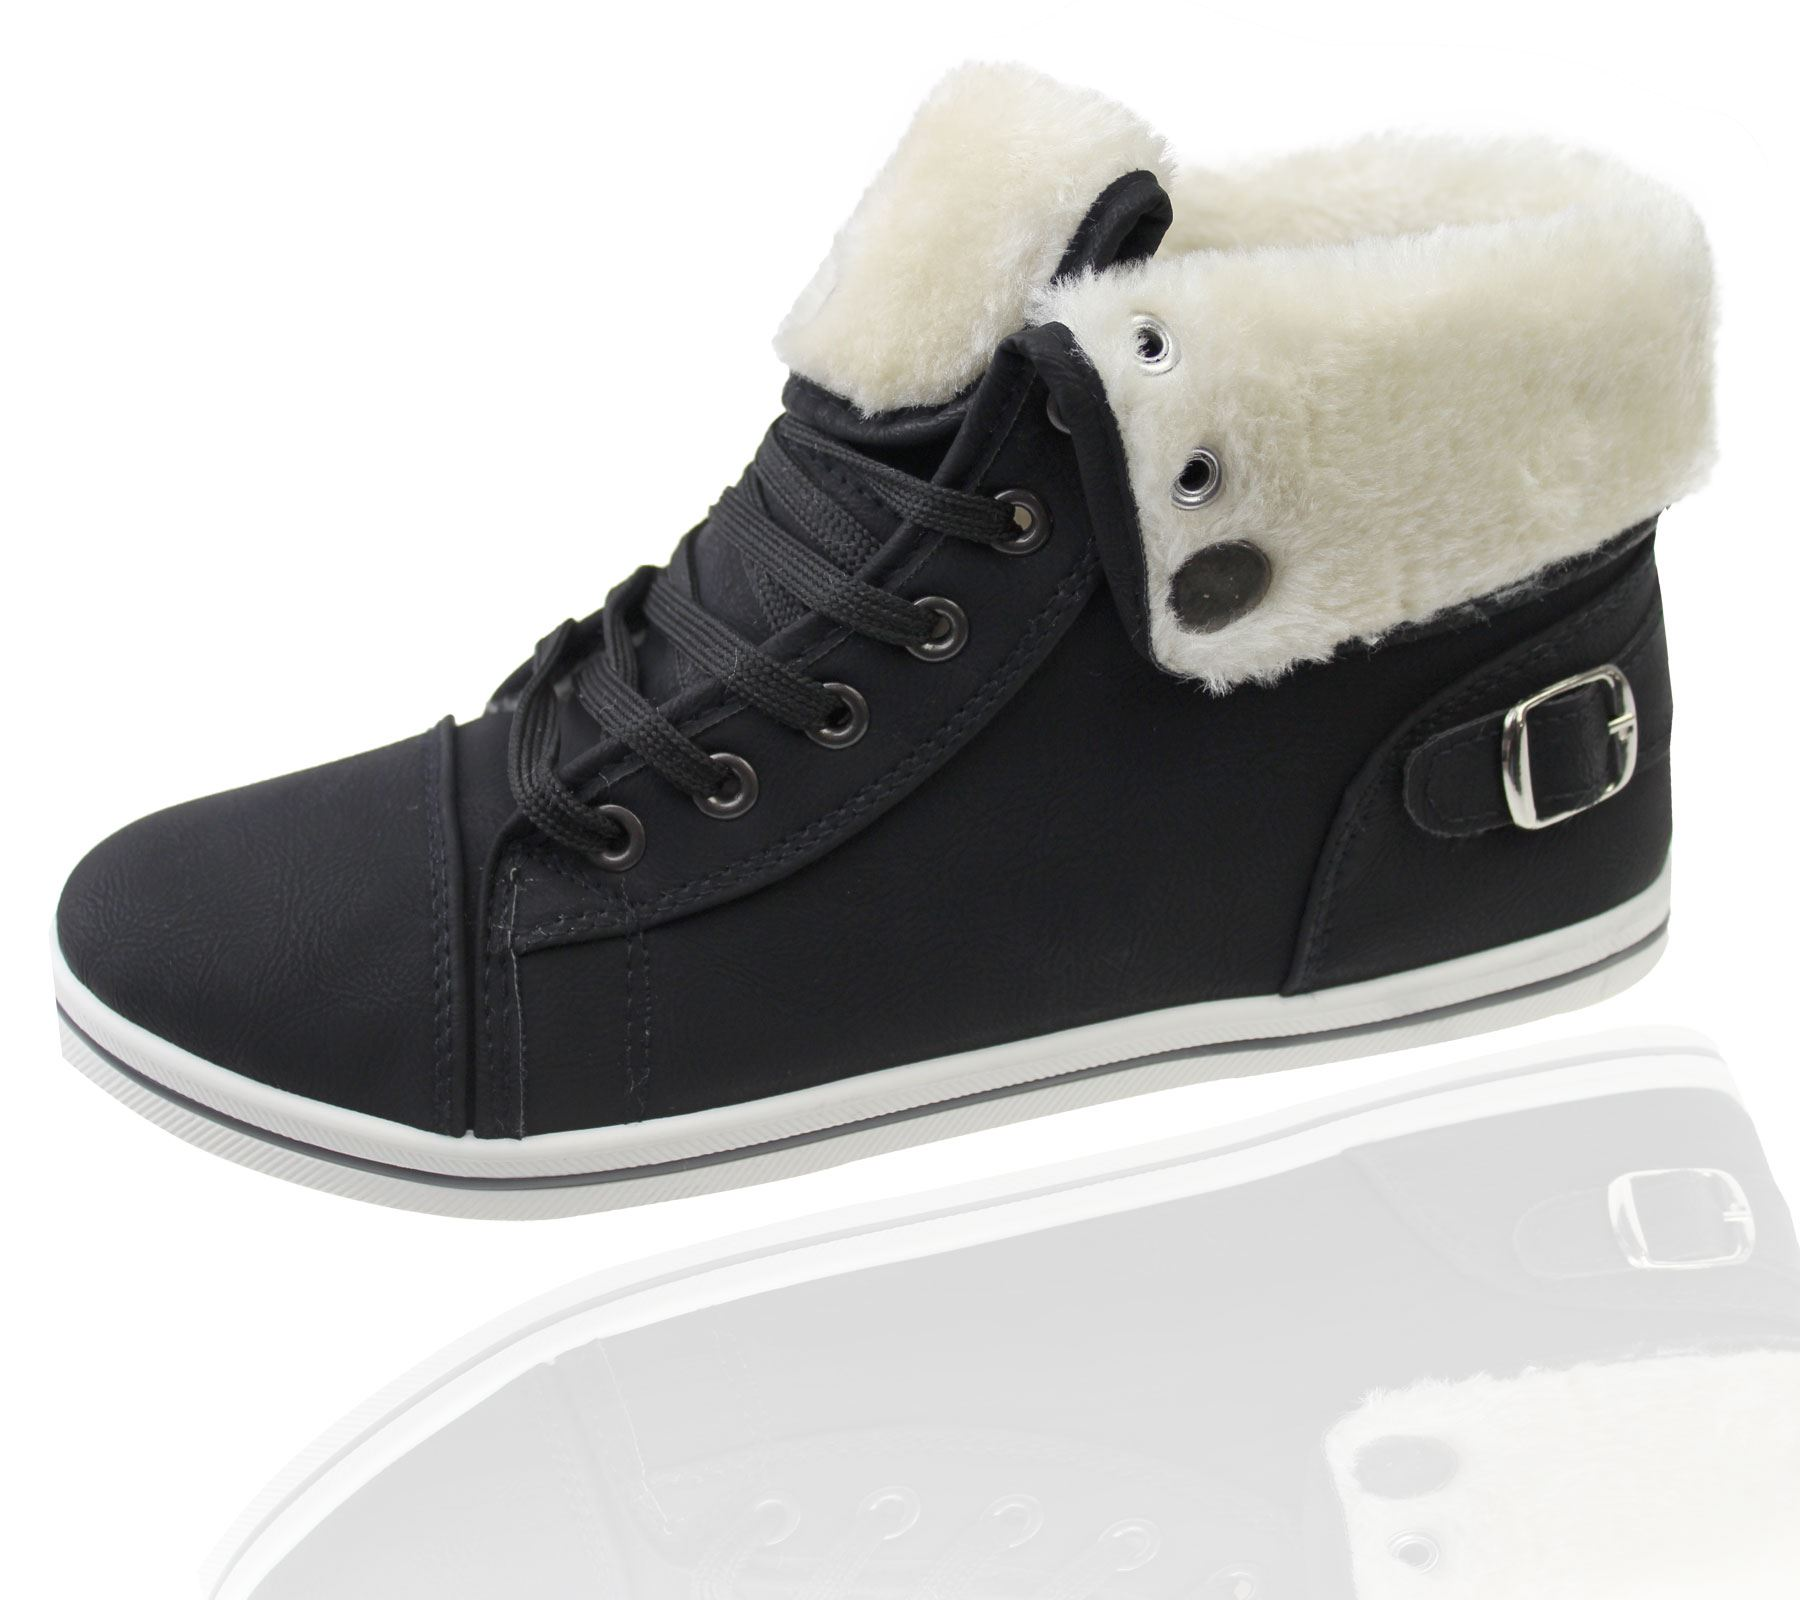 Girls-Boots-Womens-Warm-Lined-High-Top-Ankle-Trainer-Ladies-Winter-Shoes-Size miniatura 87